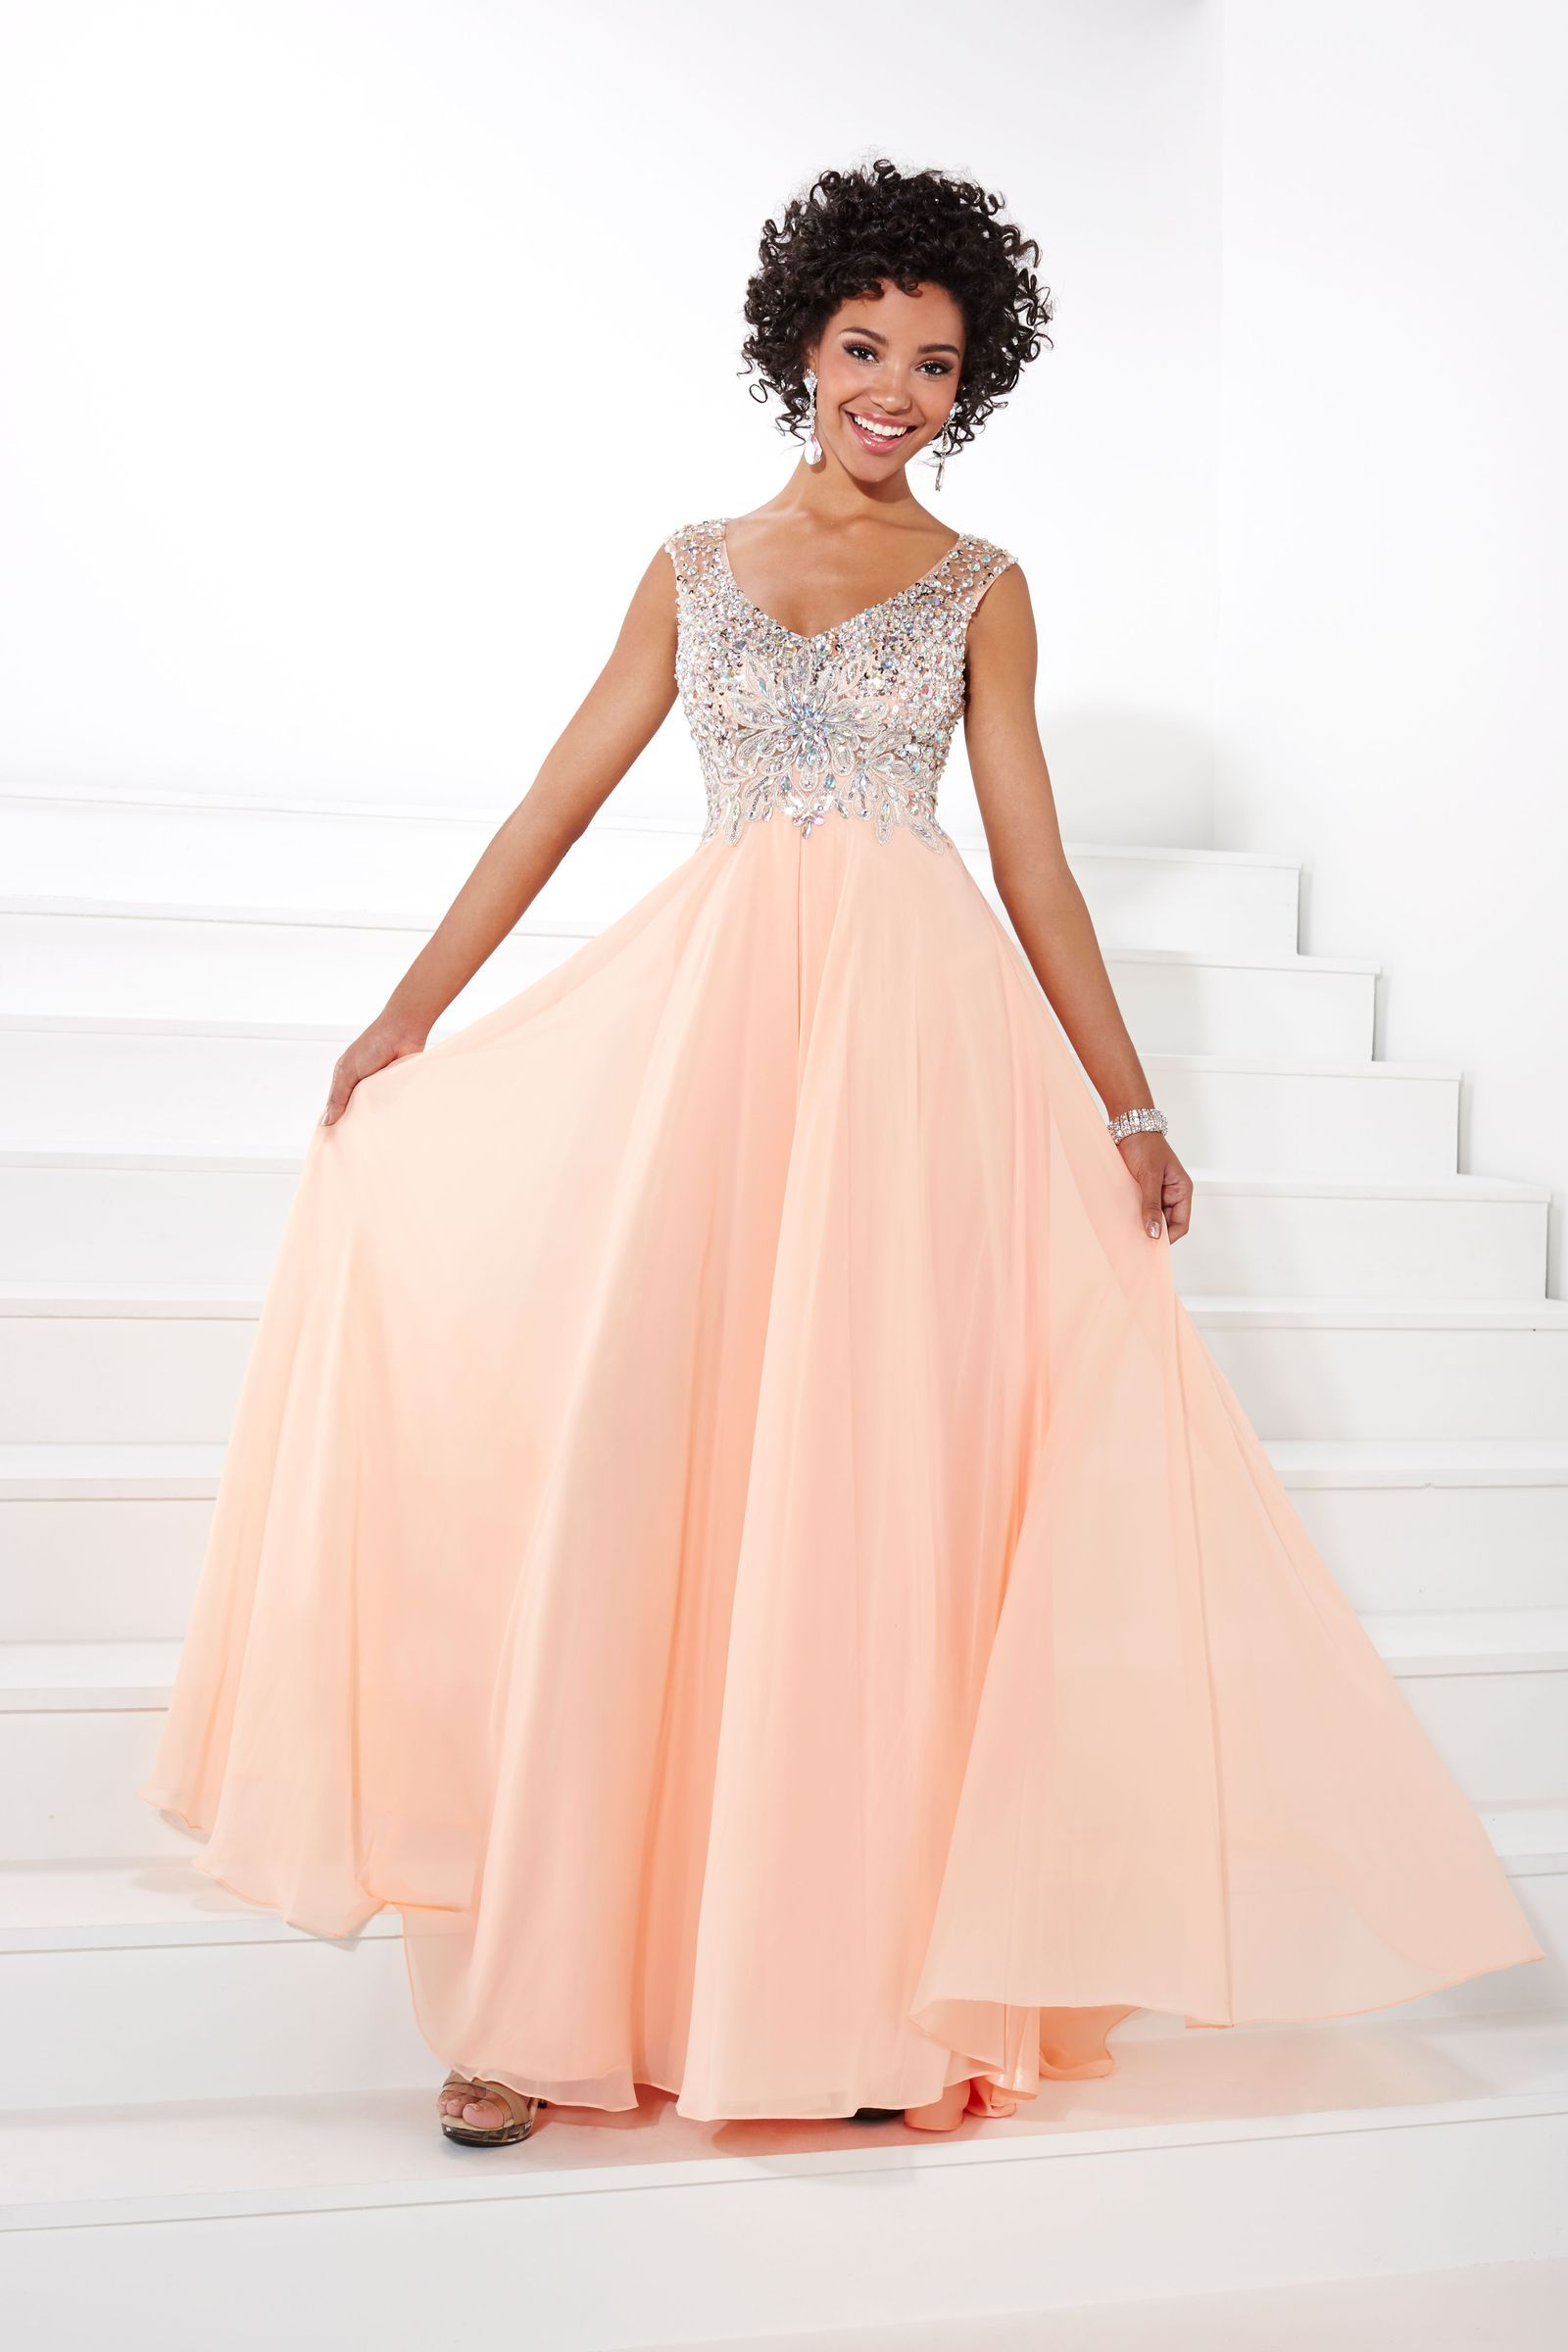 ball gowns that will make you feel like a princess on prom